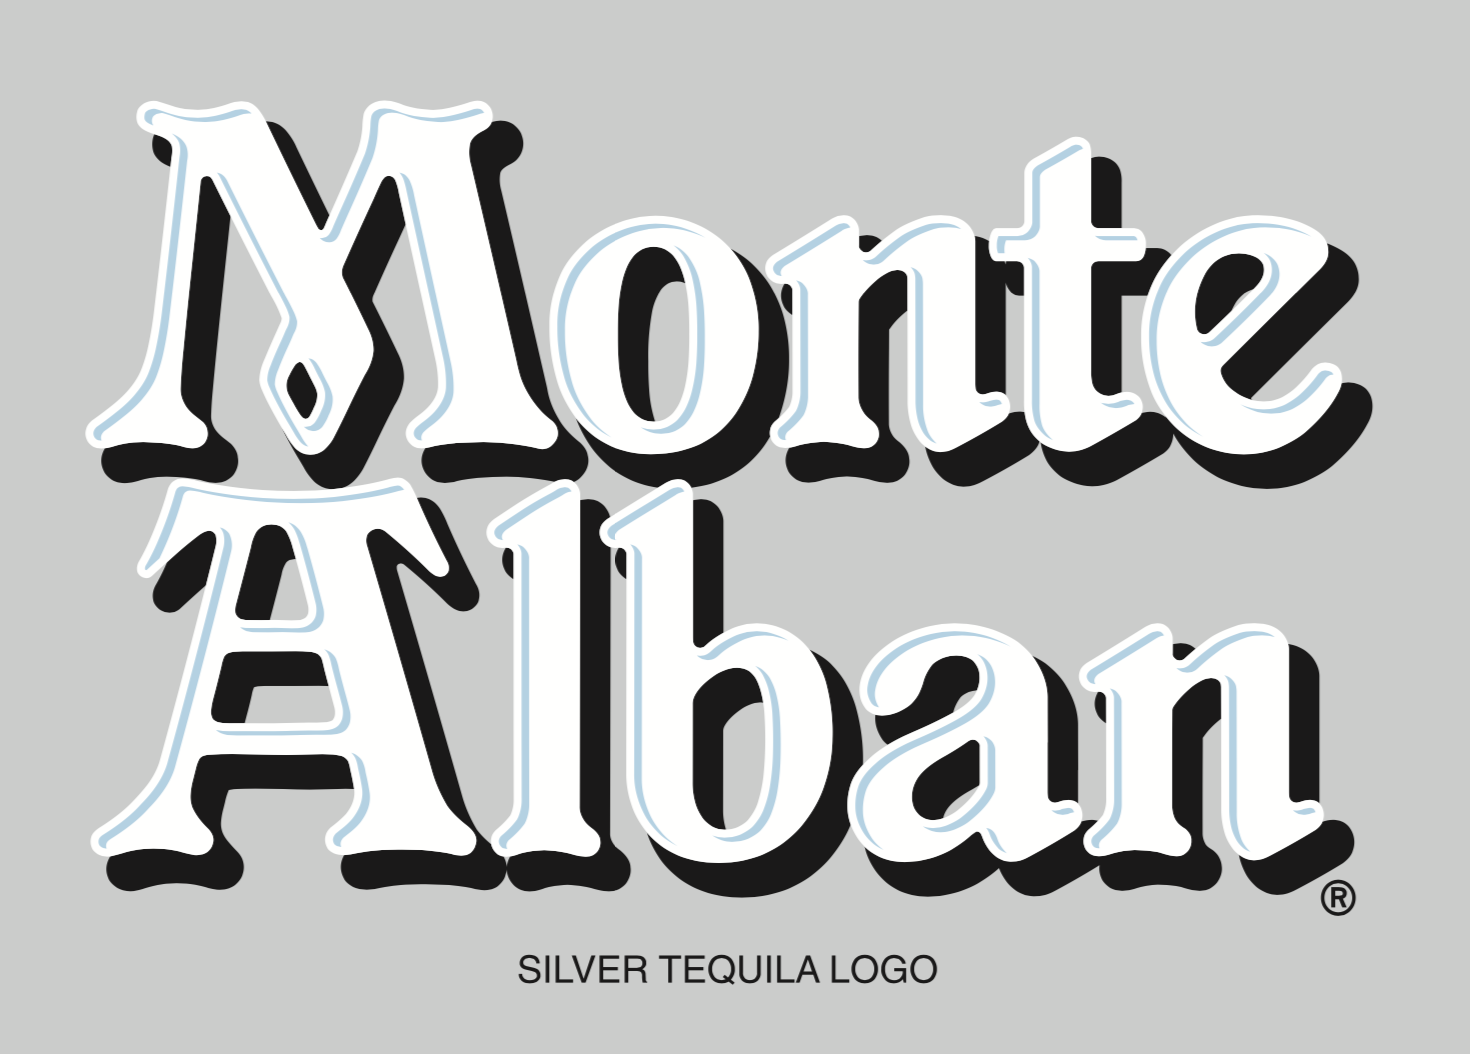 mone alban.png